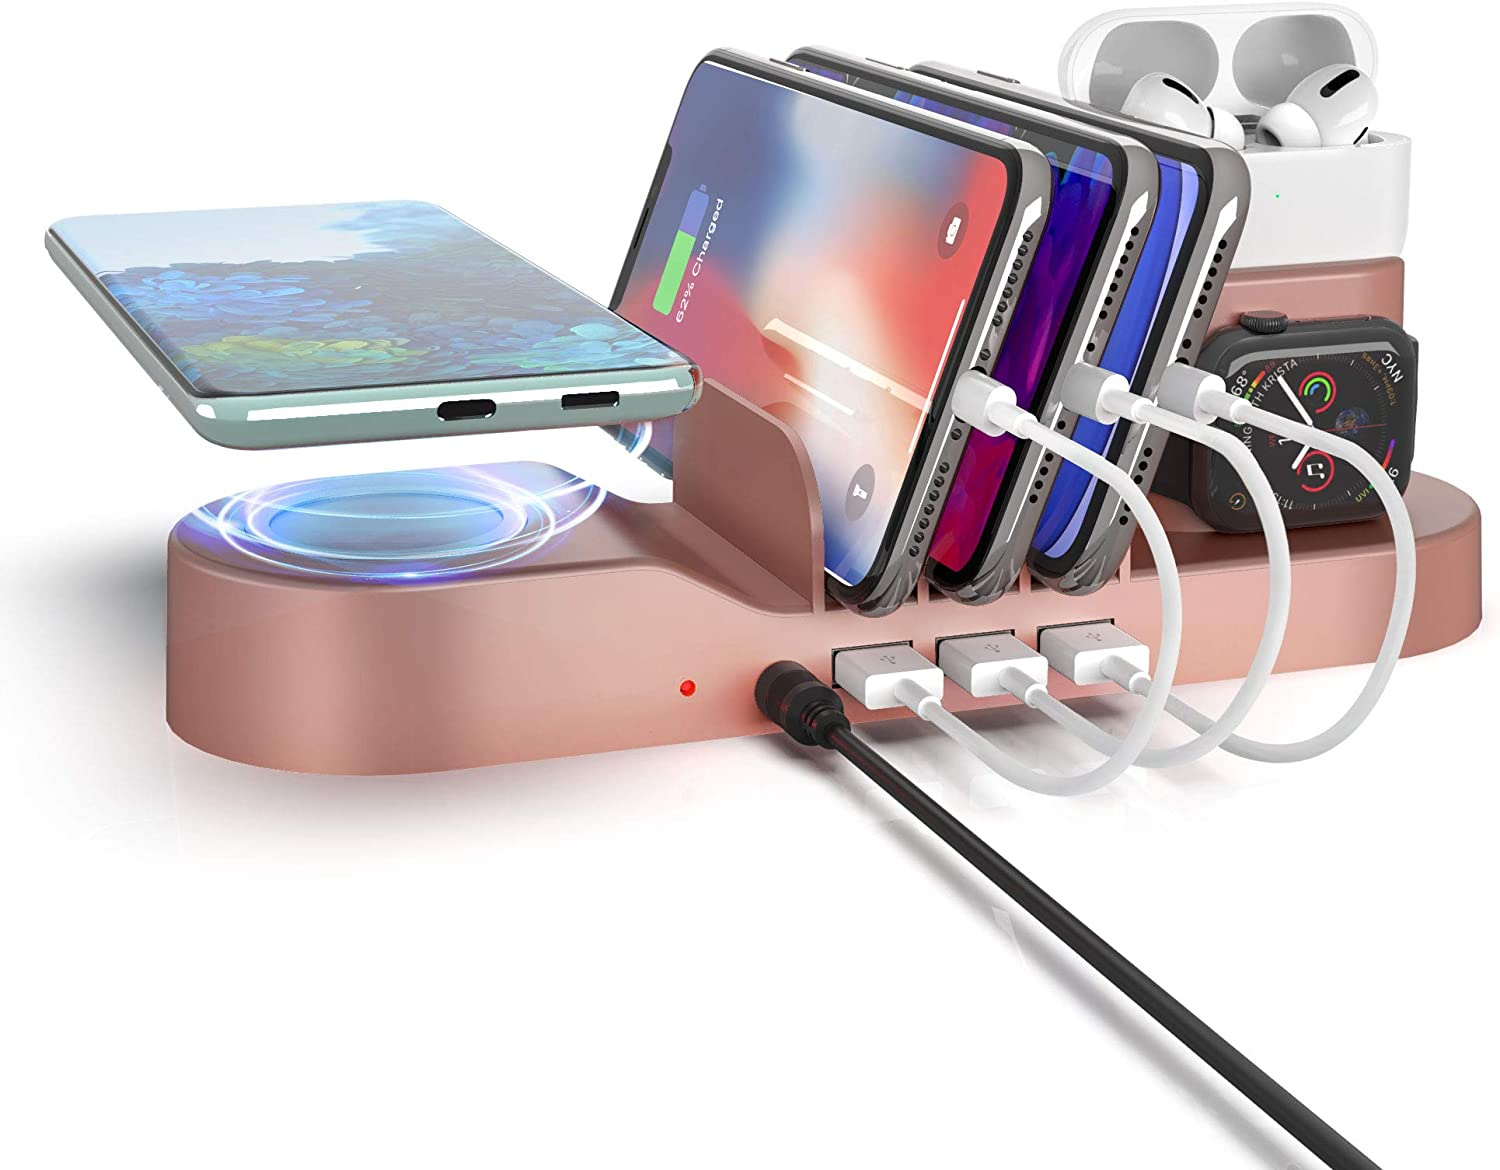 Imguardz 5 in 1 Charging Station for Multiple Devices, Multi Charger Organizer Docking Station with Wireless Charging 3 USB Port Compatible with Phone/AirPods/iPad/iWatch/Android Phone, Rose Gold